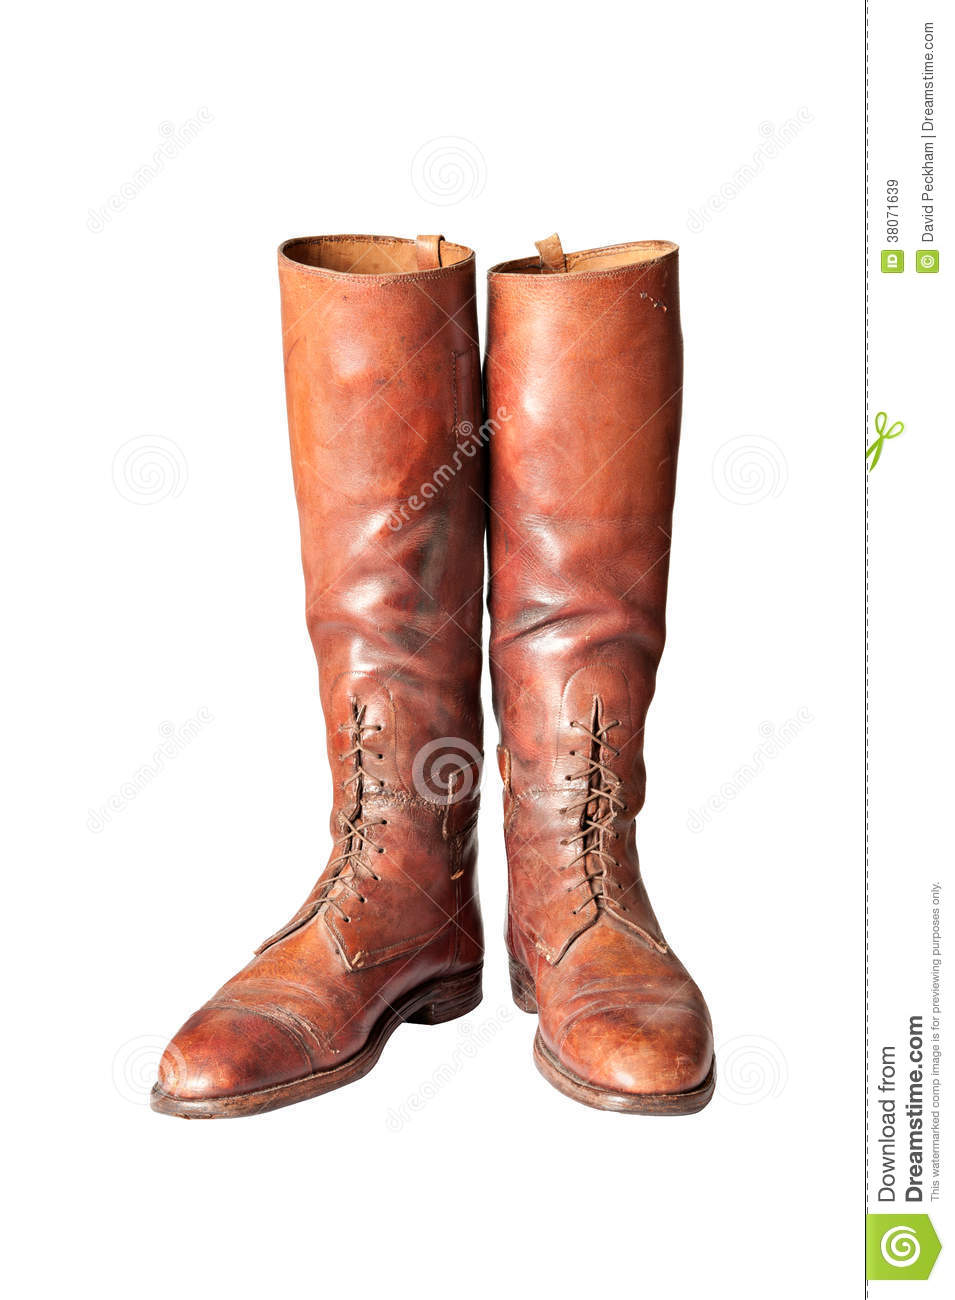 Vintage Brown Knee High Mens Riding Boots On White Royalty